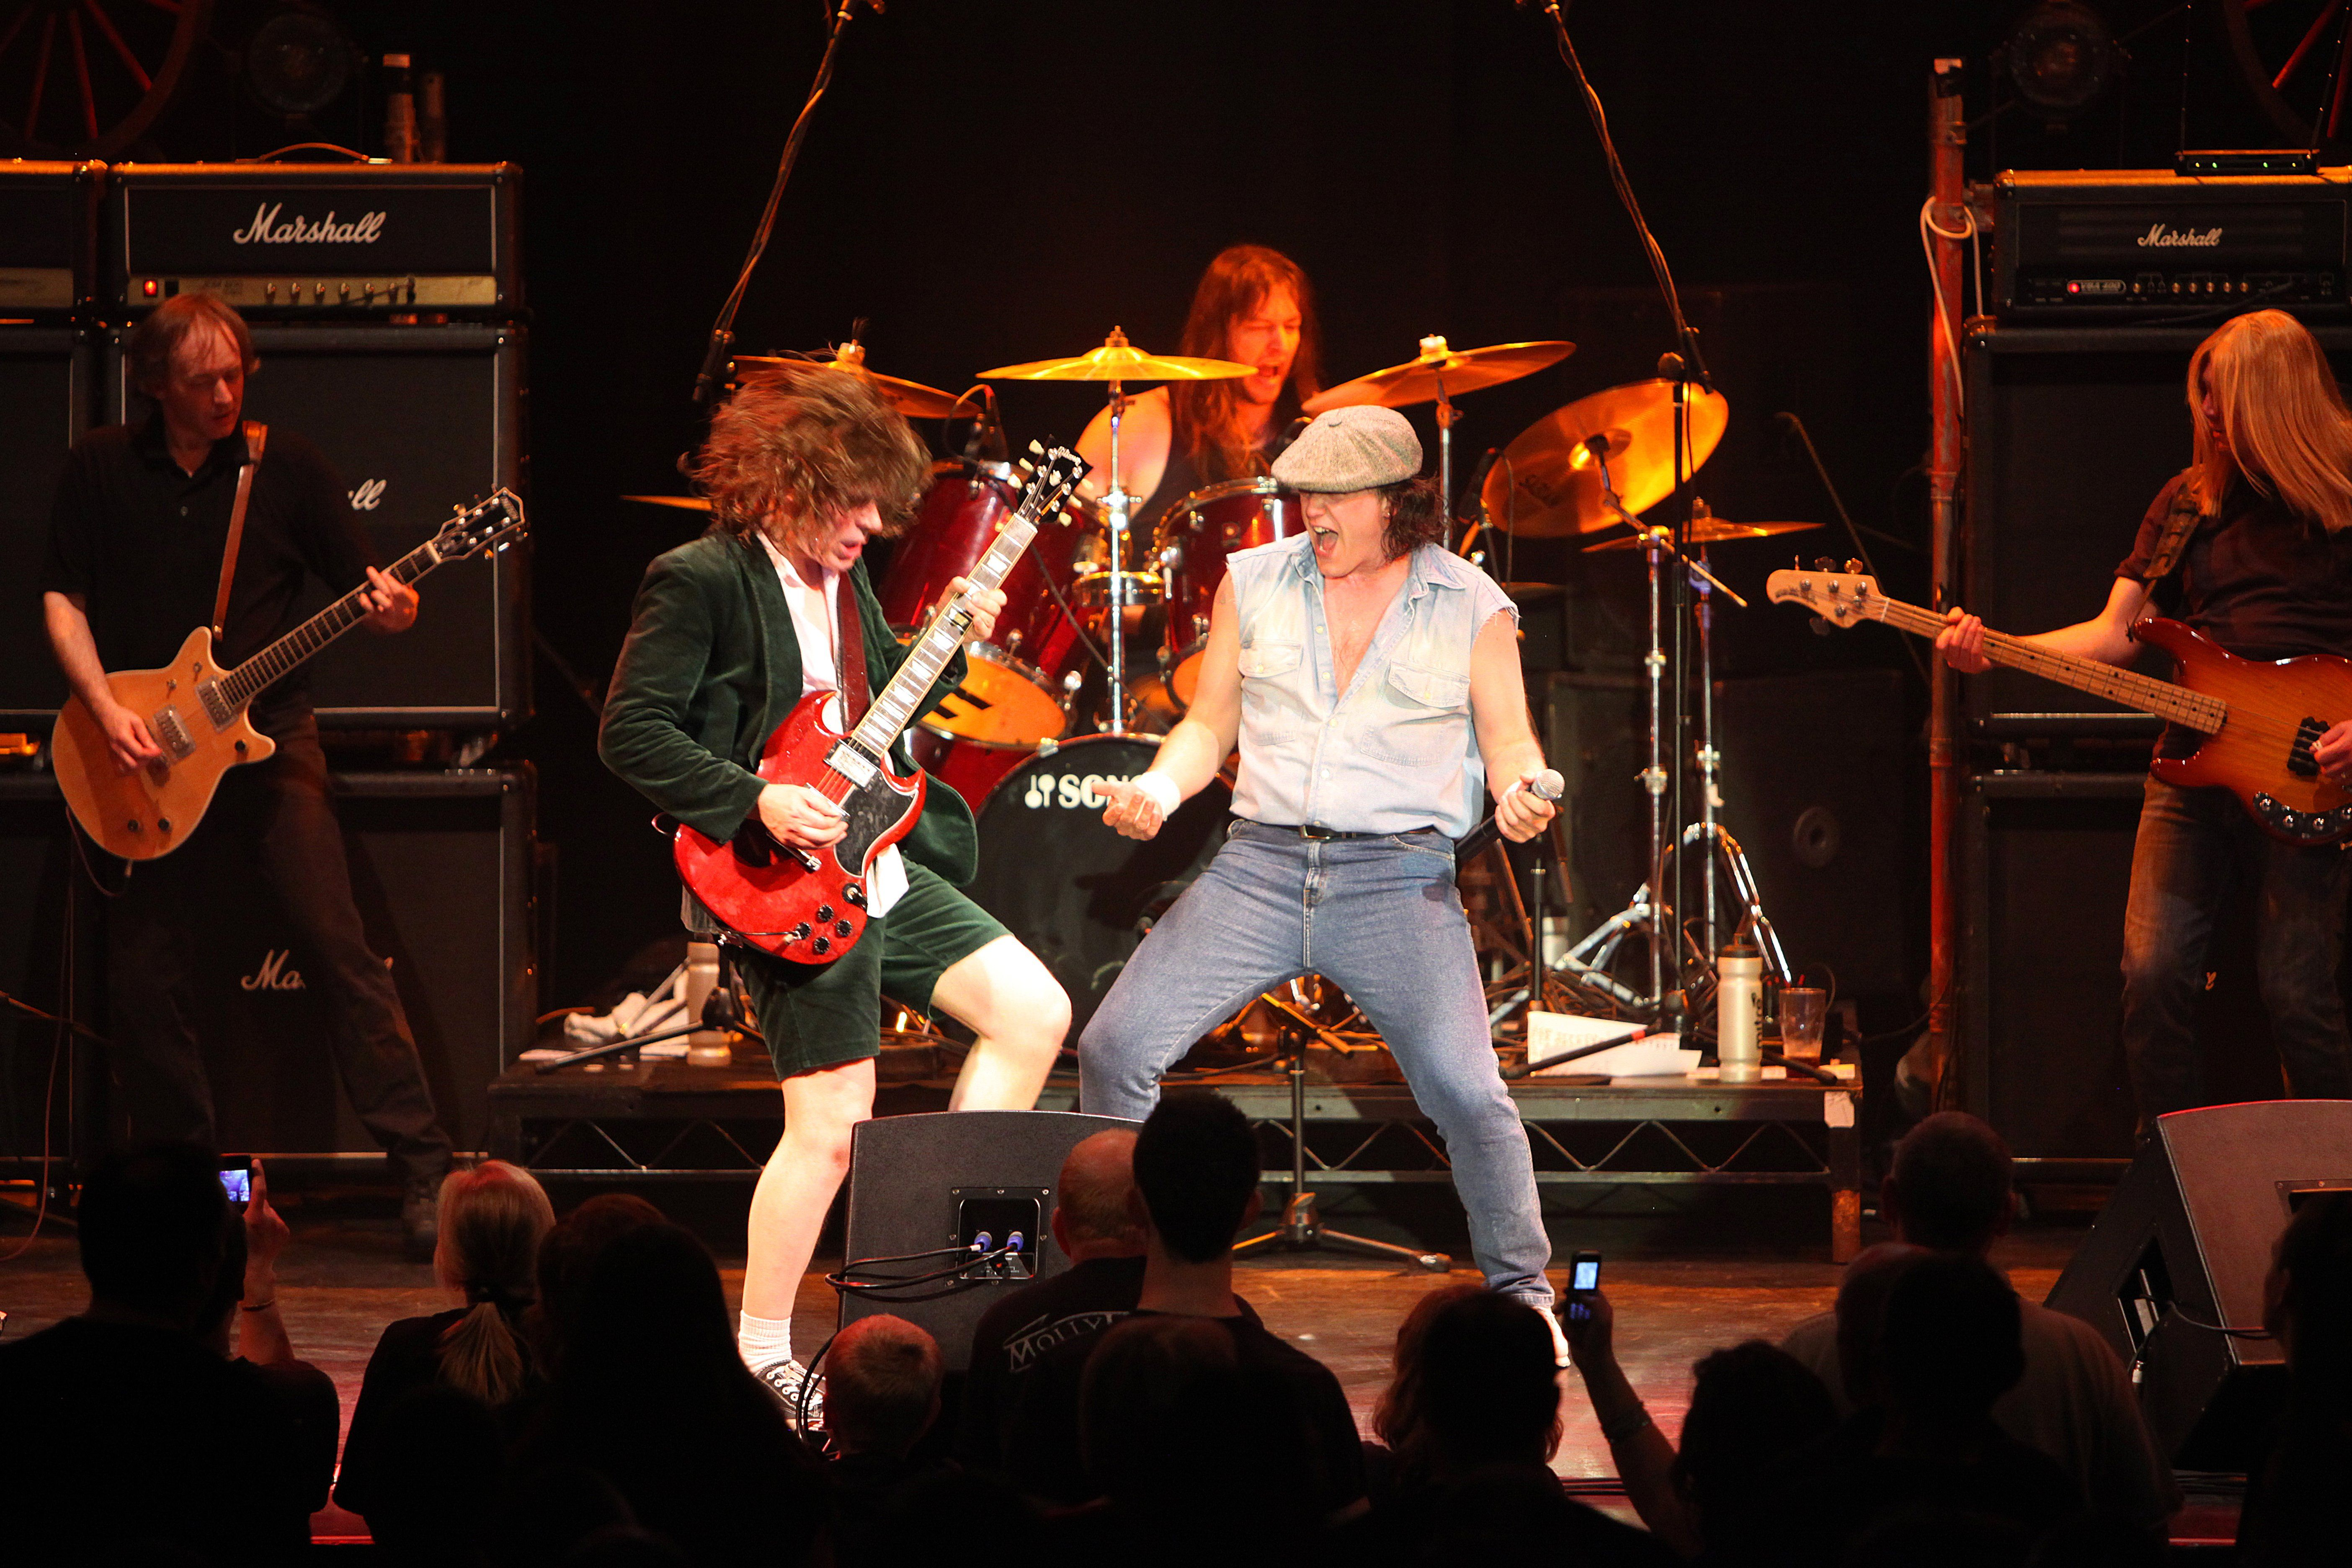 Acdc If You Want Blood Tour